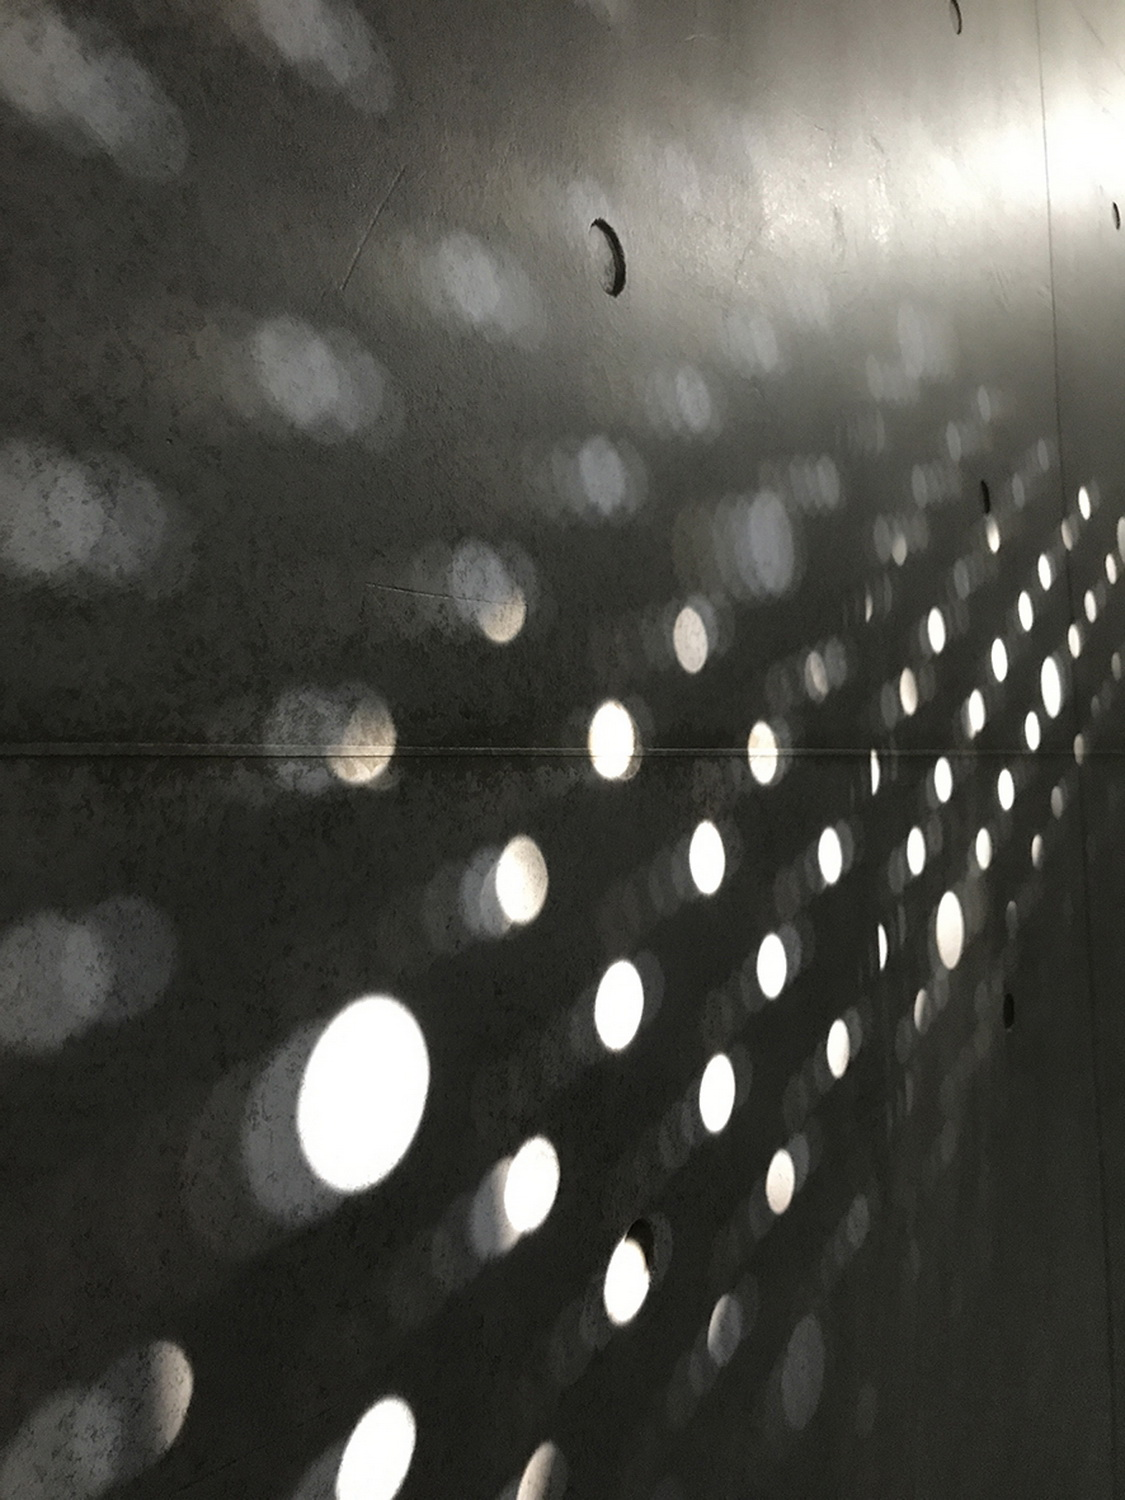 Stunning images of numerous moving light dots Kuo Chien Shen